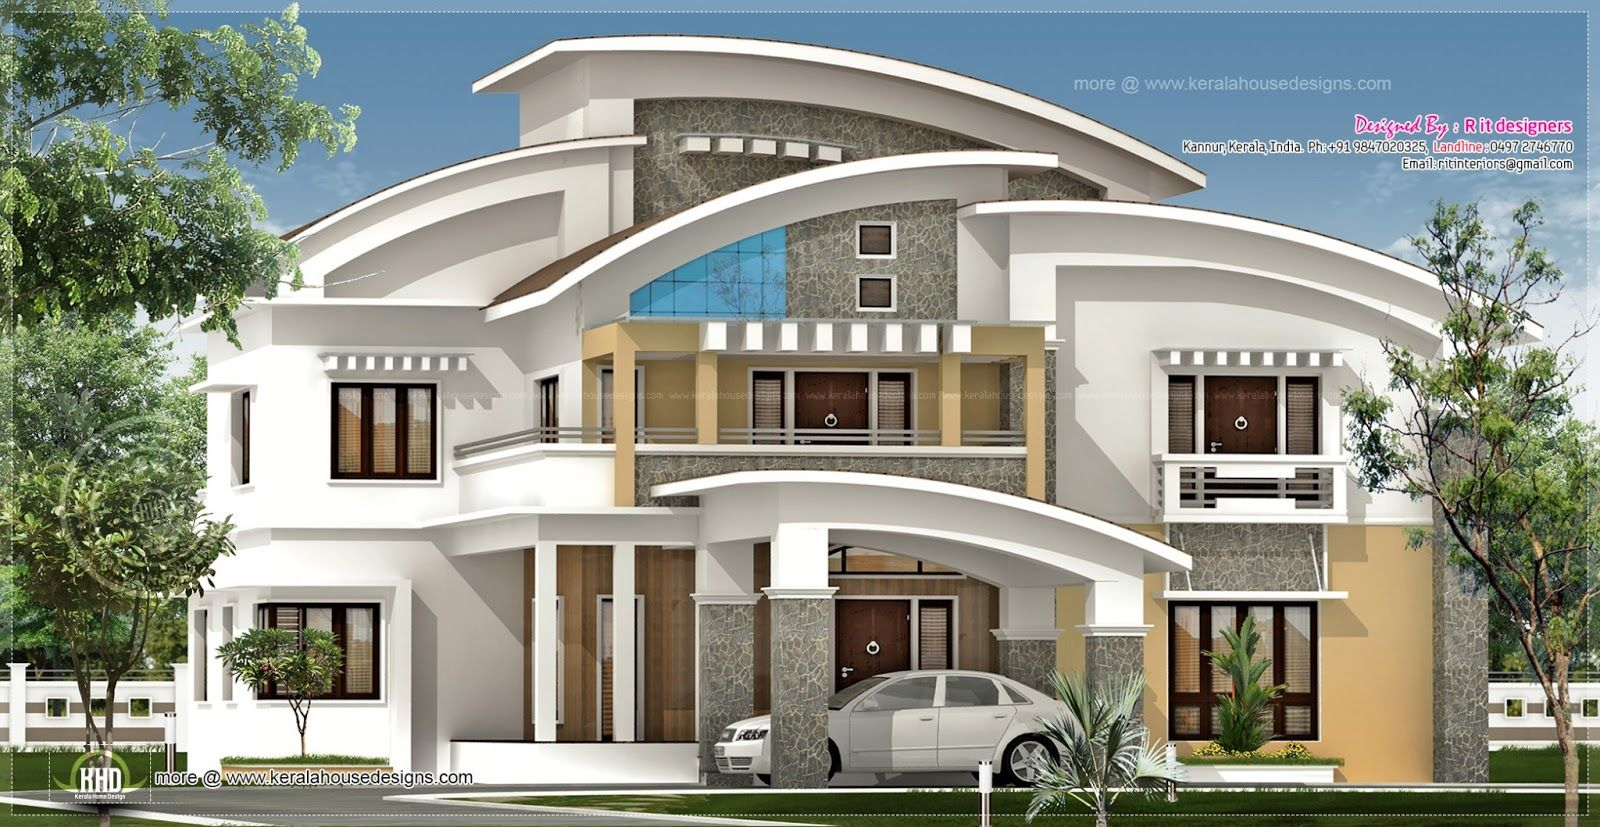 Awesome luxury homes plans 8 french country luxury home for New home exterior design